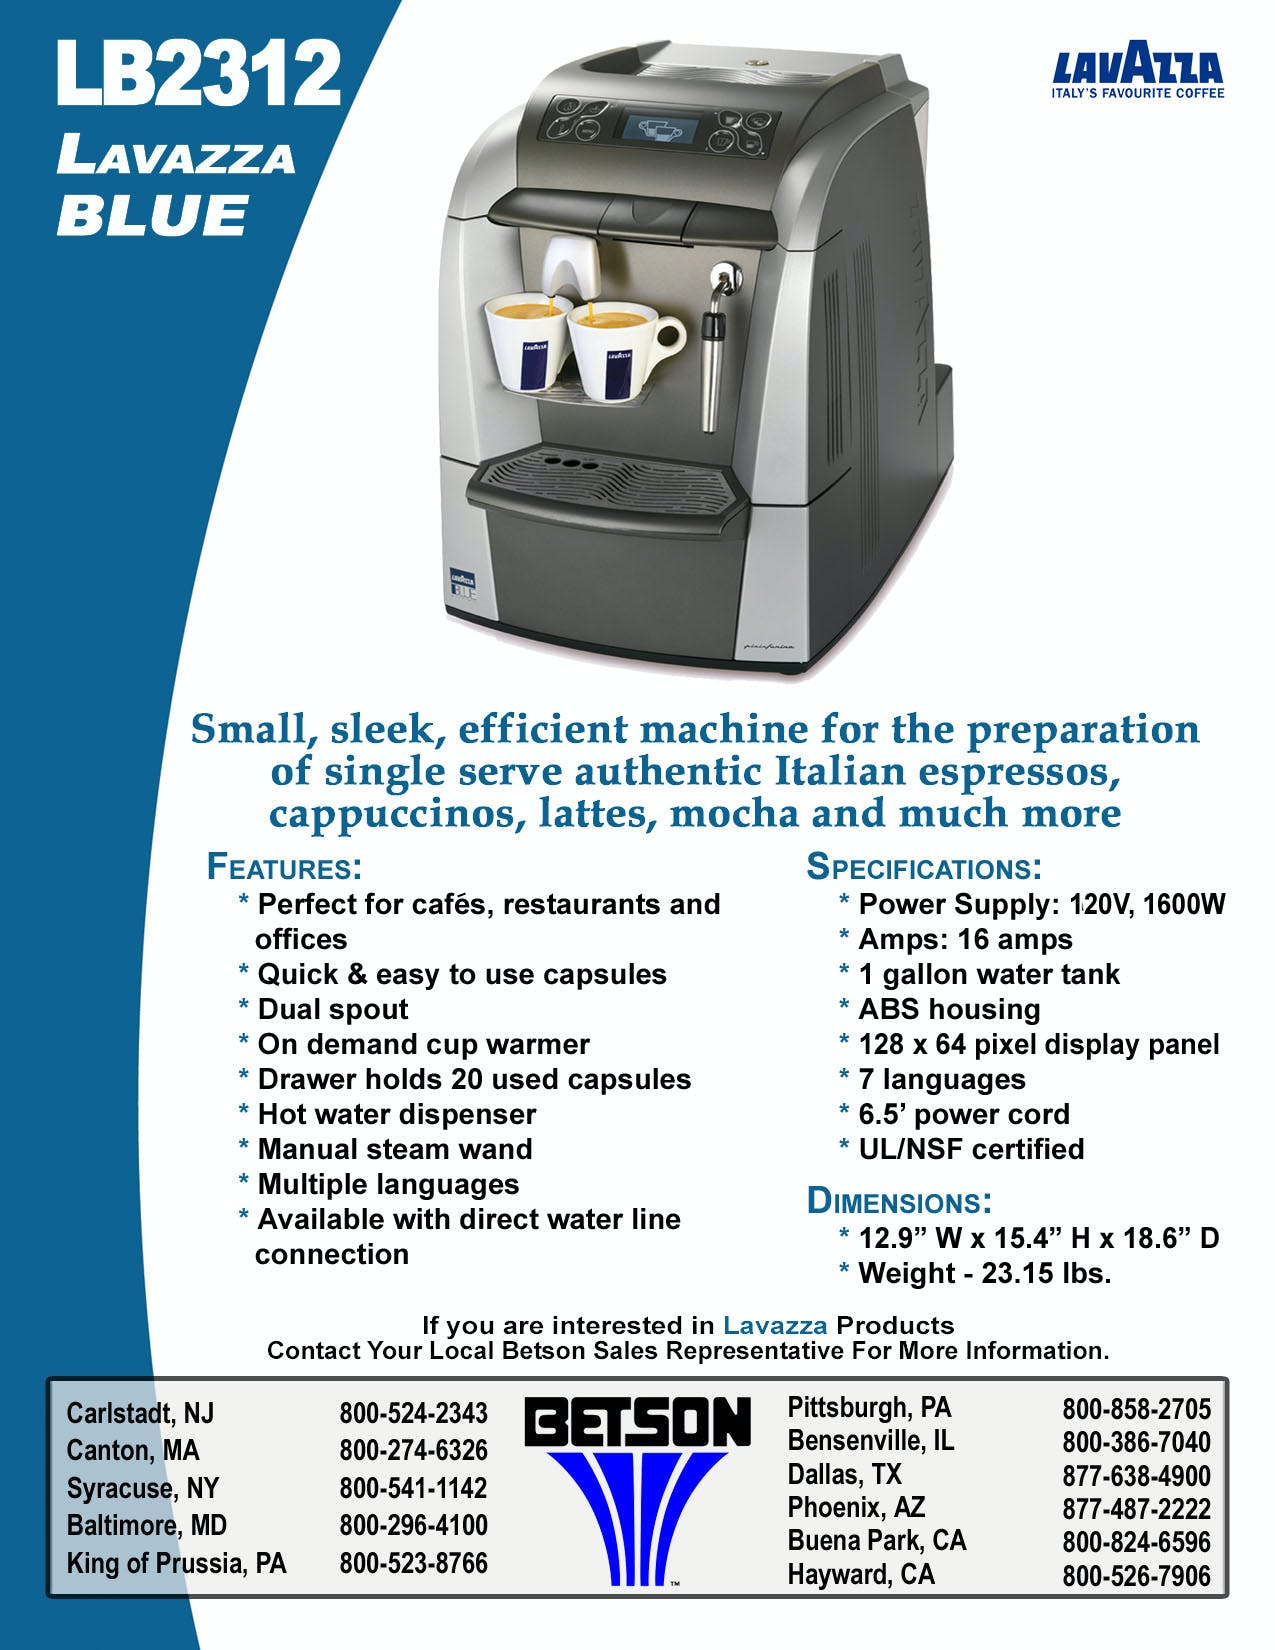 LB2312 Lavazza Blue Espresso Machine Espresso machine sold by Betson Enterprises